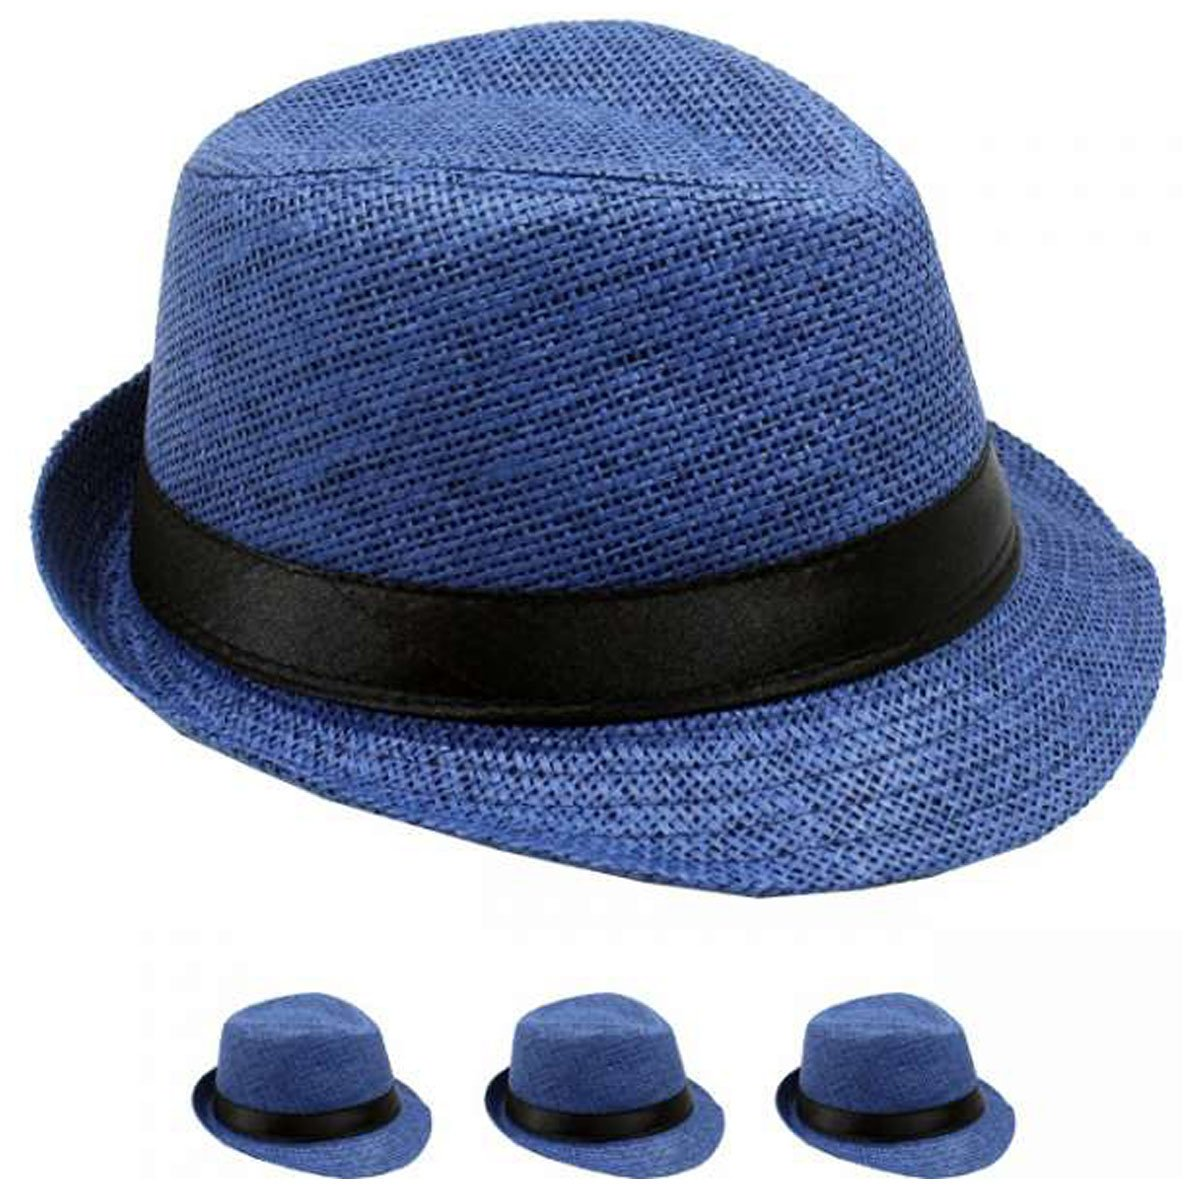 List A Banded Straw Fedora Hat for Kids Trilby Gangster Panama Classic Vintage Short Brim Style (Navy)